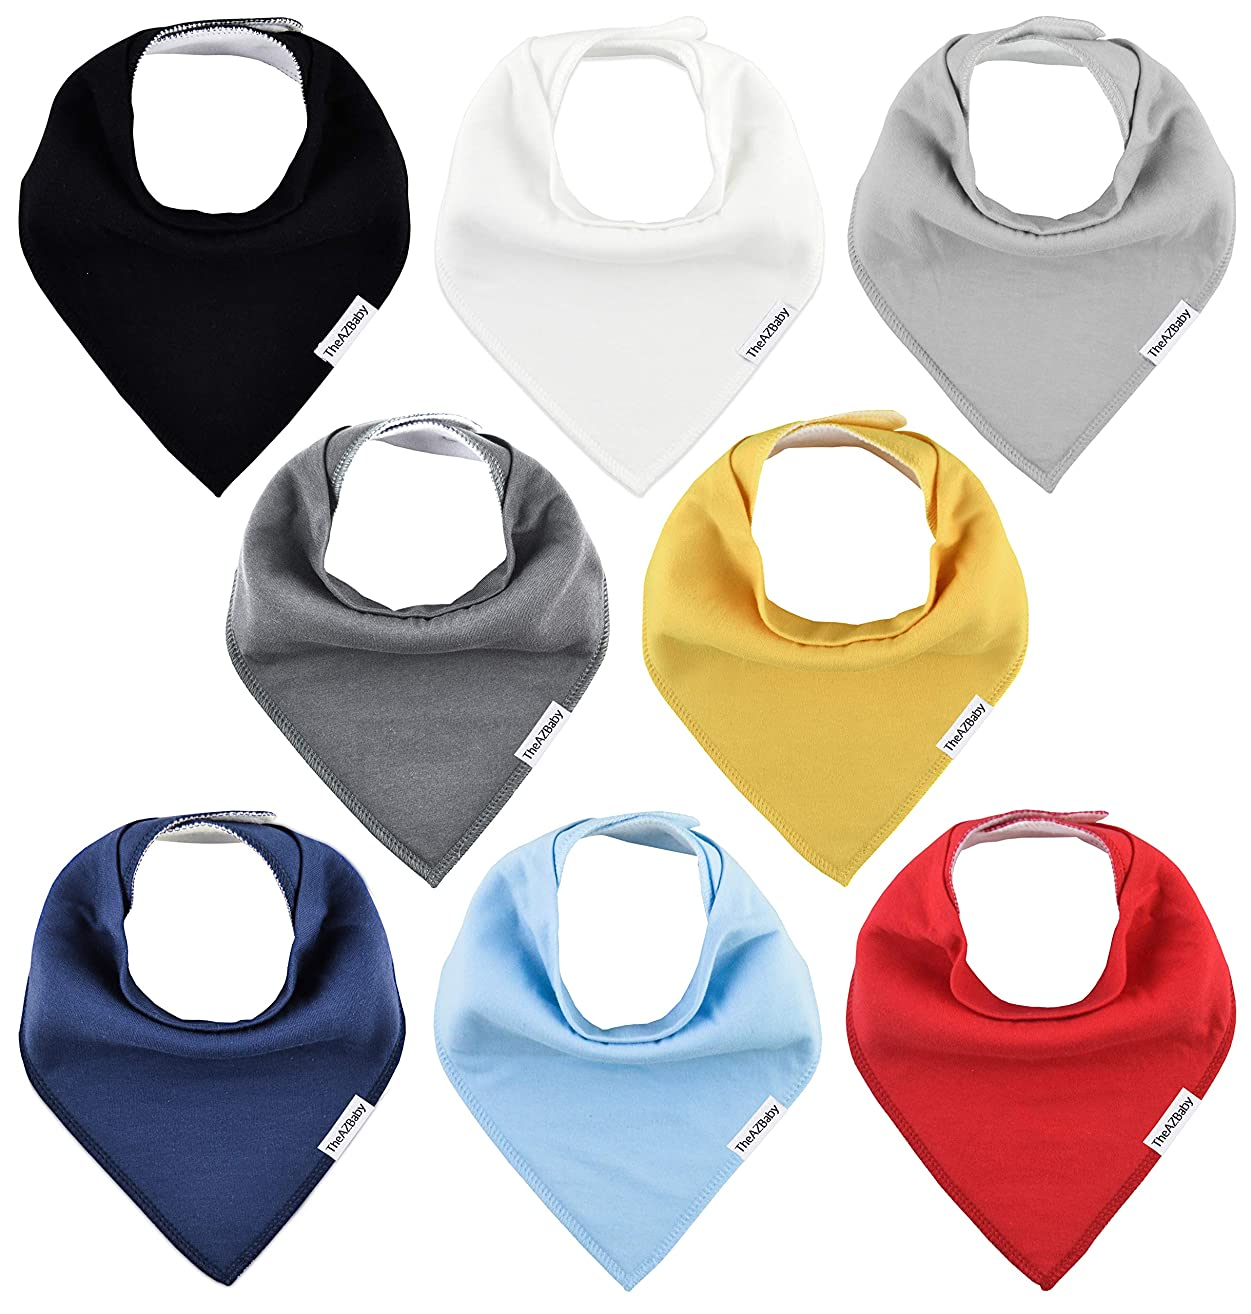 TheAZBaby Baby Bandana Drool Bibs for Boys and Girls, Organic, Plain Colors, Unisex 8 Pack Baby Shower Gift Set for Teething and Drooling, Soft Absorbent and Hypoallergenic (Solid Colors)